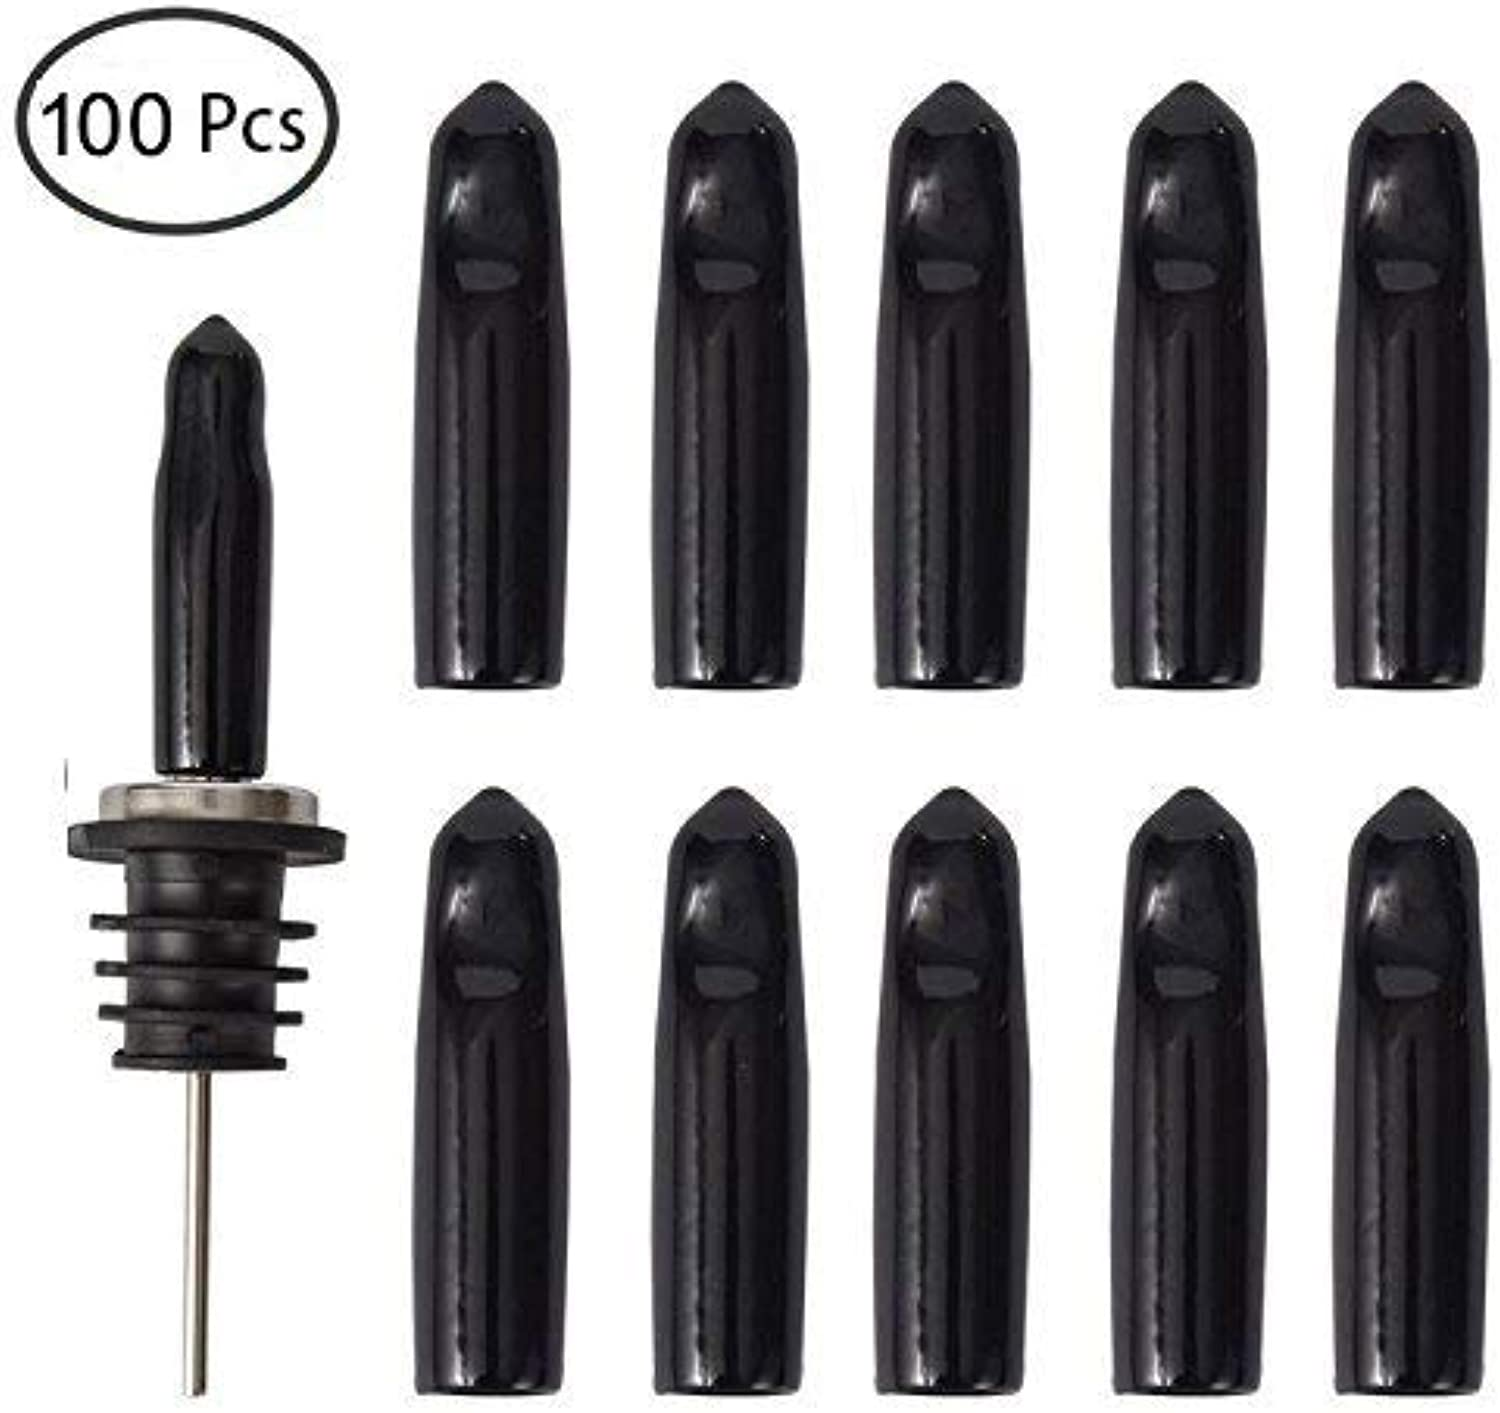 LEGERM 100 Pcs Liquor Bottle Pourer Cap Olive Oil Pour Spouts Rubber Dust Cover Caps Dust-Proof,Food-safe